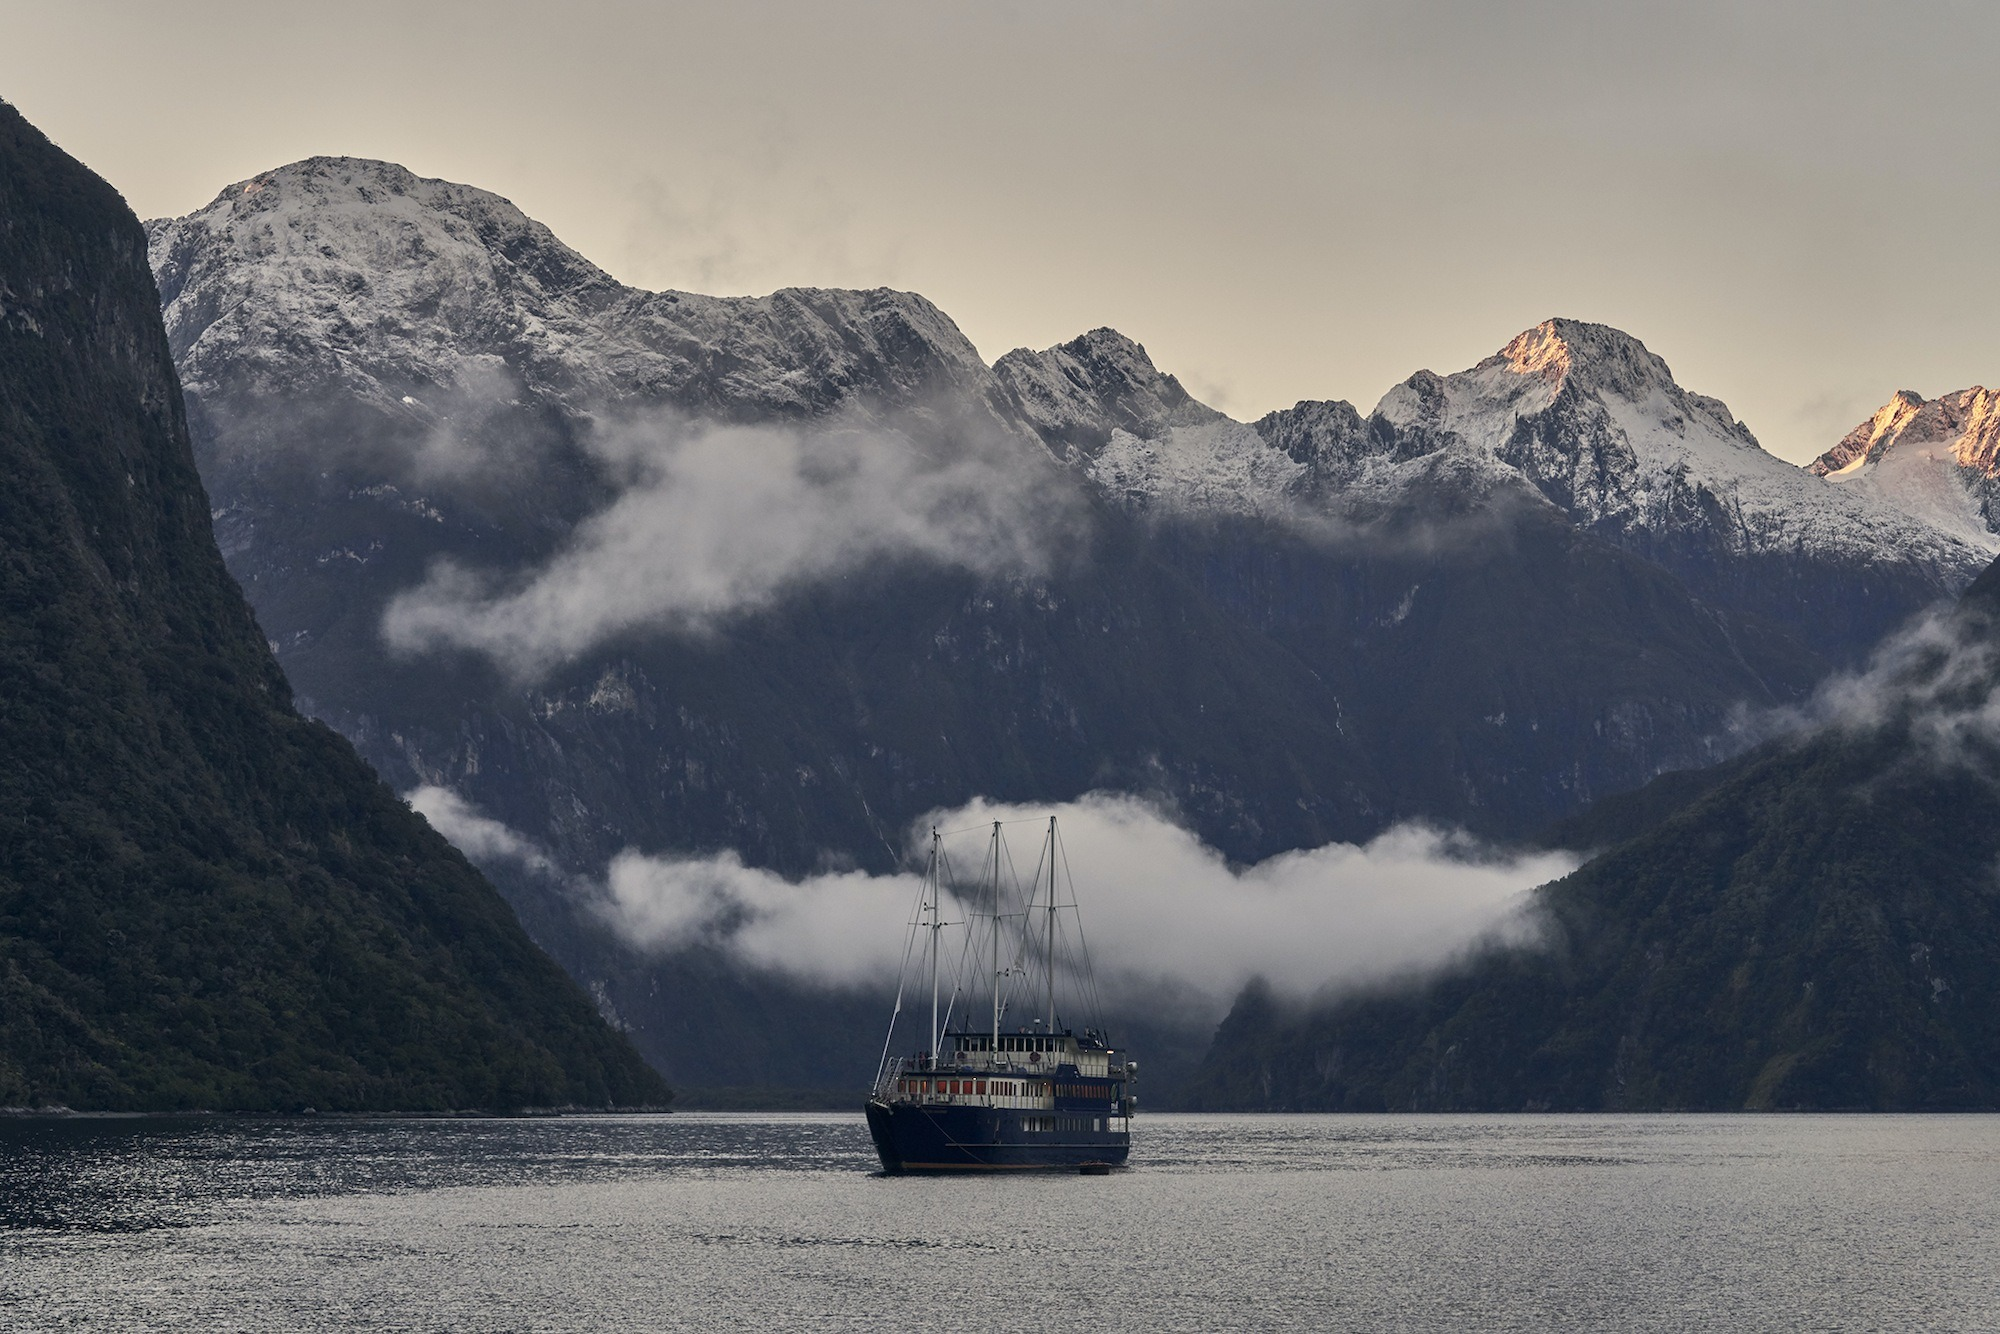 Sleeping in Milford Sound will change your life